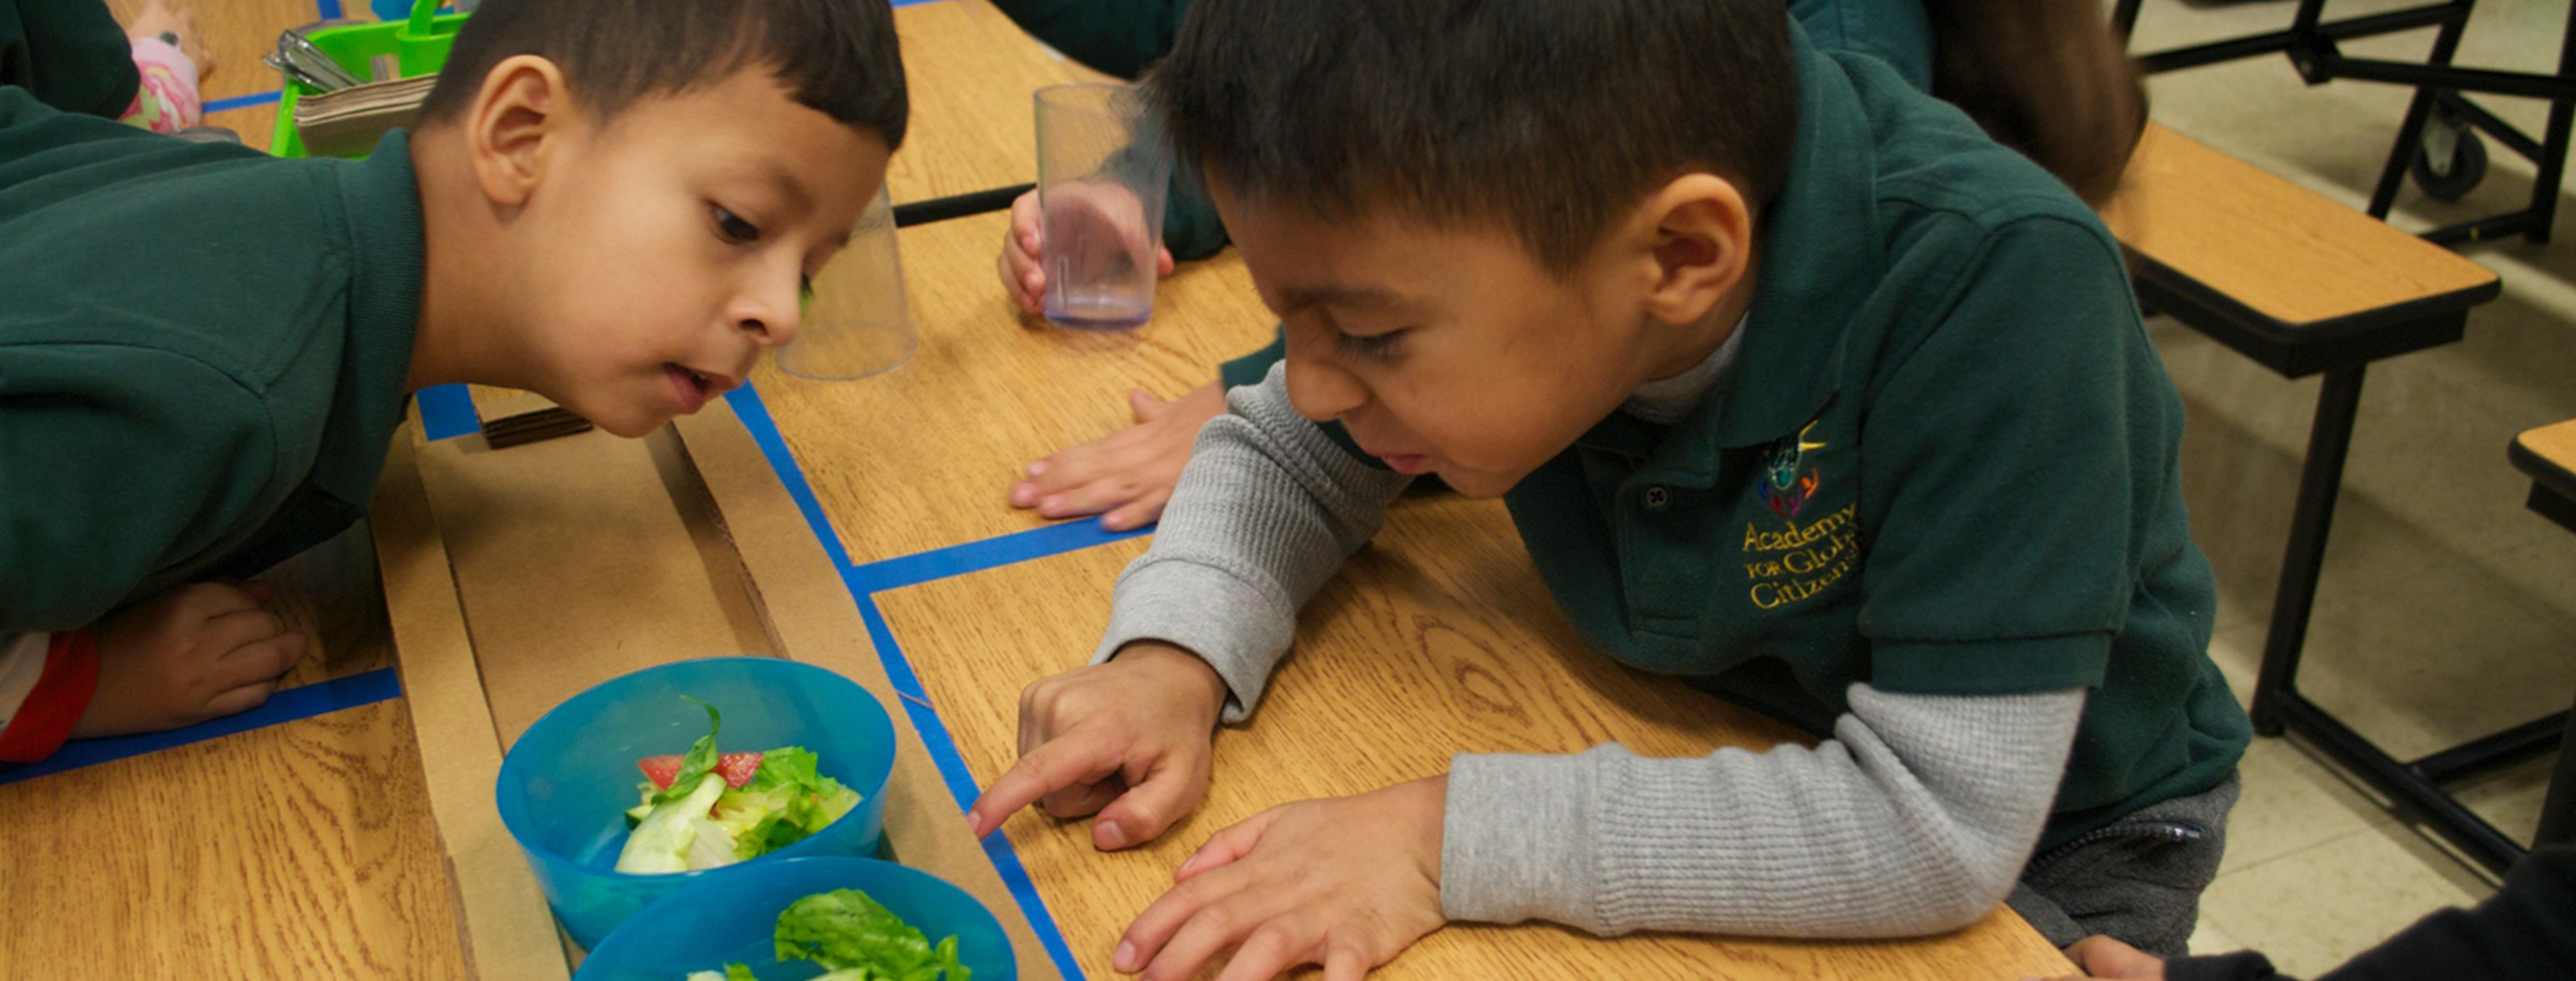 two medium-skinned boys wearing dark green school-uniform polo shirts sit on benches at a long, wood-paneled school cafeteria table. a brown cardboard tray sits in the middle of the table with multiple blue plastic bowls holding salad. the boy on the right points at a bowl of salad with a disgusted look on his face. the boy on the left leans all the way over the tabletop to see what the boy on the right is pointing at.